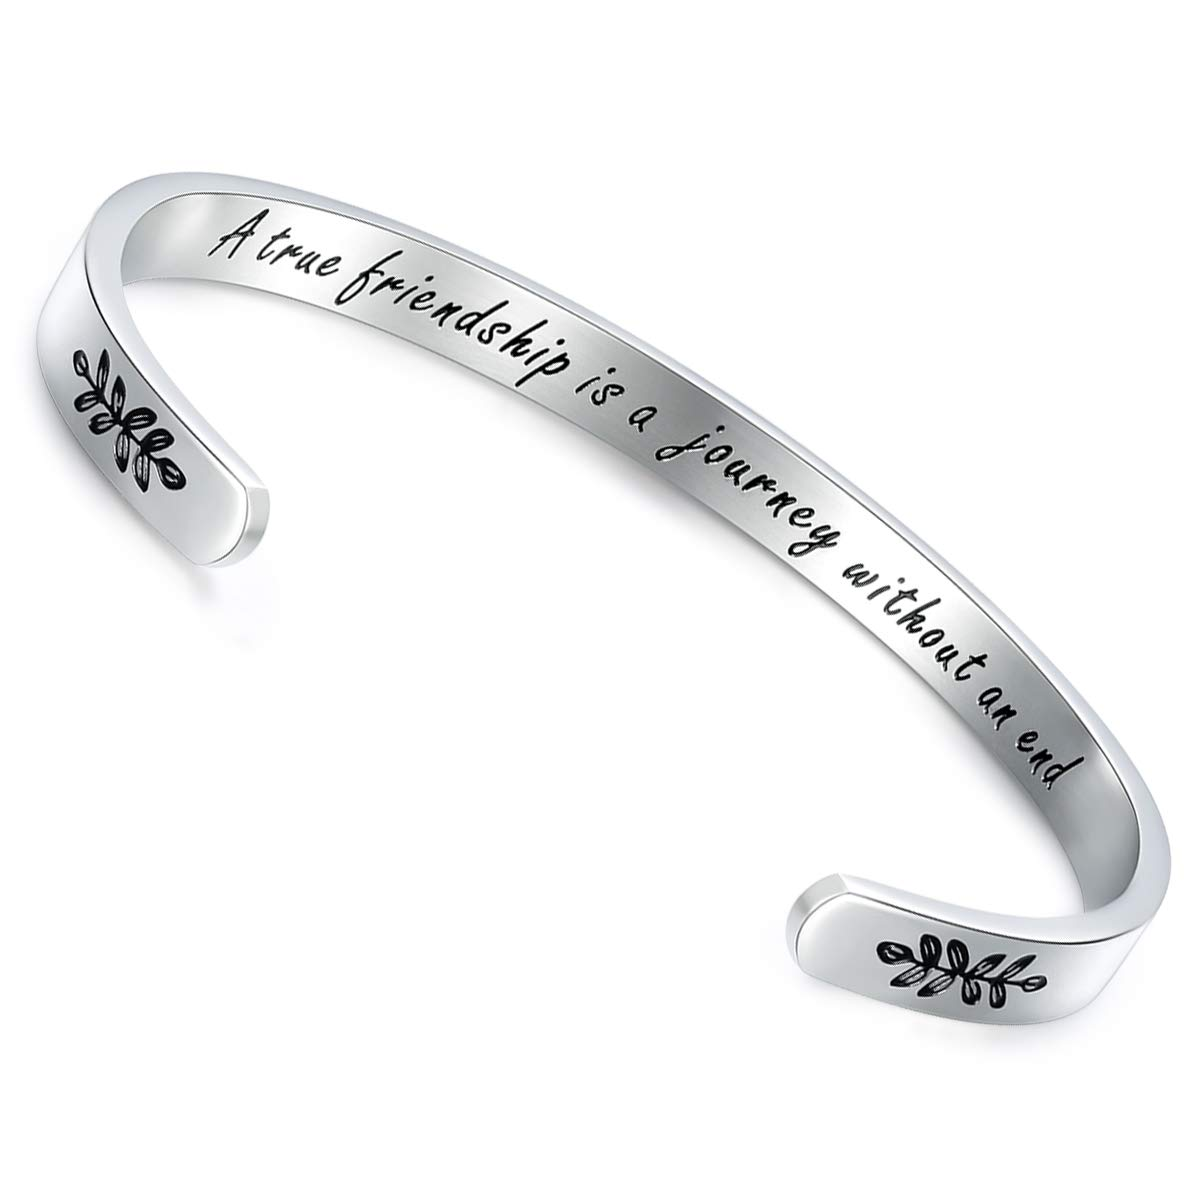 CERSLIMO Friendship Gifts for Women Best Friend Bracelet,Stainless Steel Personalized Inspirational Mantra Quote Bracelets Cuff Bangle Friendship Encouragement Birthday Gifts for Woman Girls